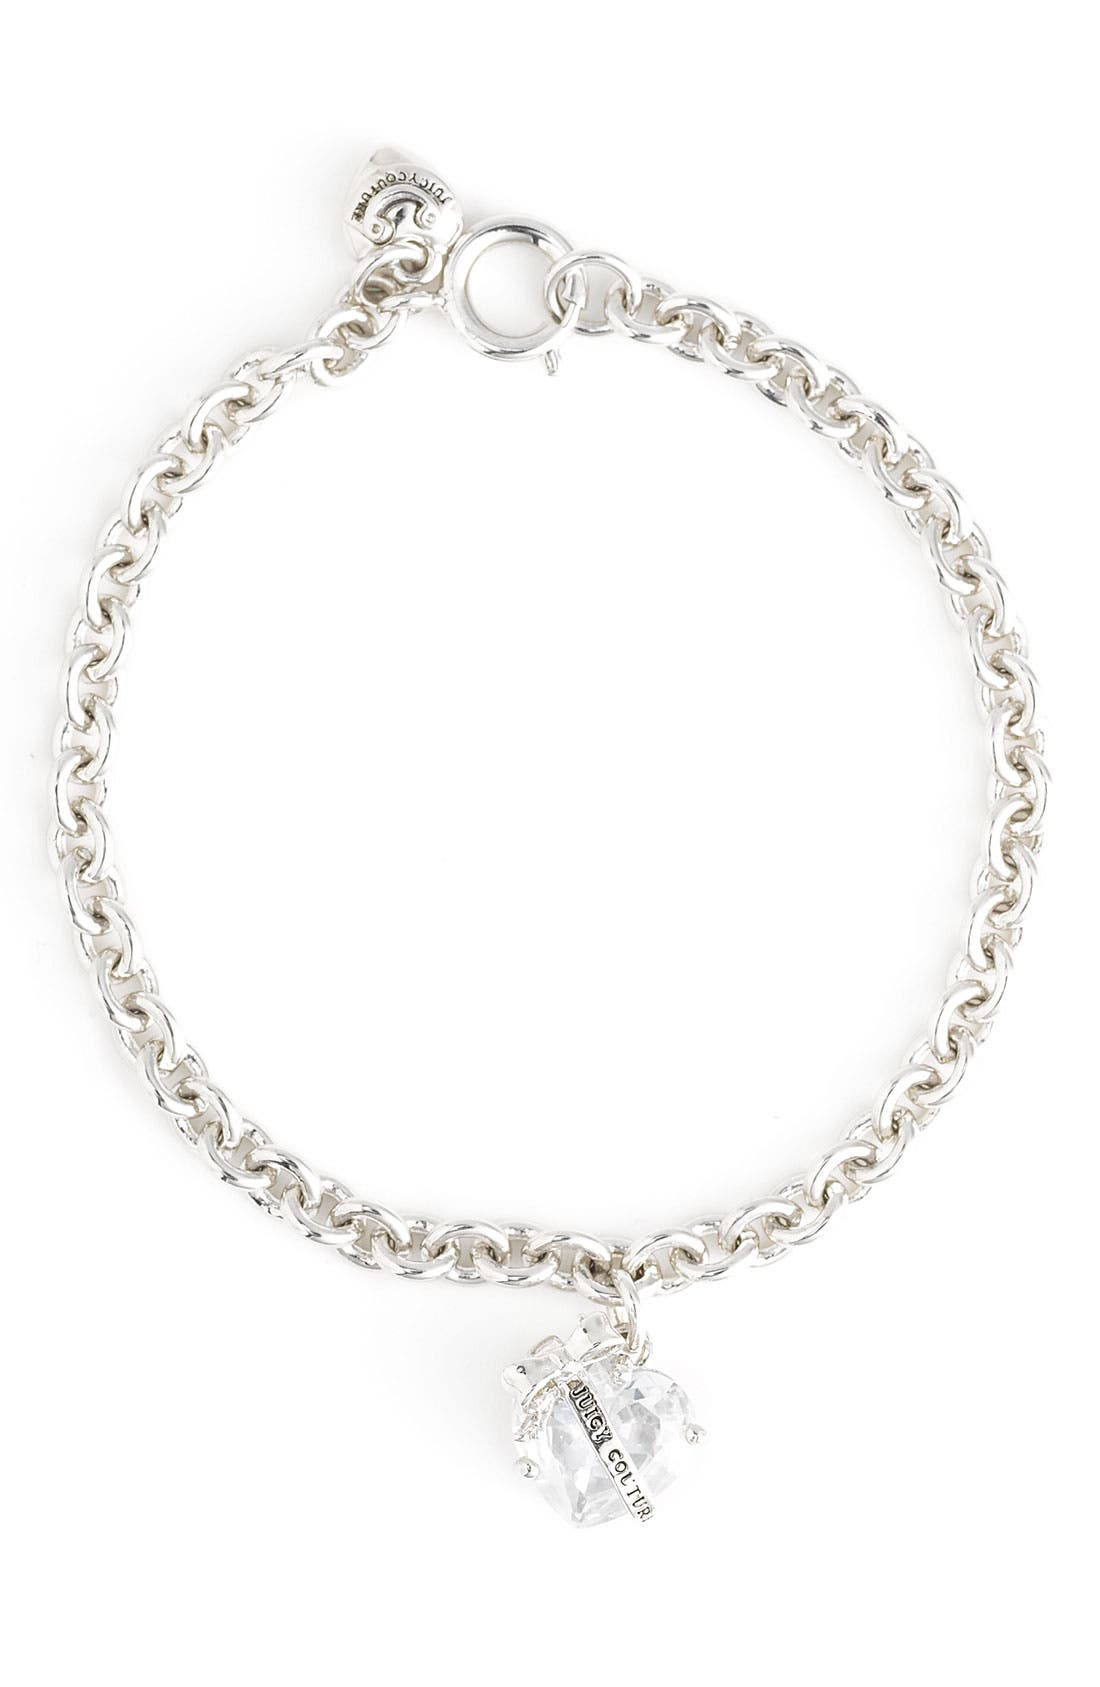 Alternate Image 1 Selected - Juicy Couture 'Wish' Banner Heart Bracelet